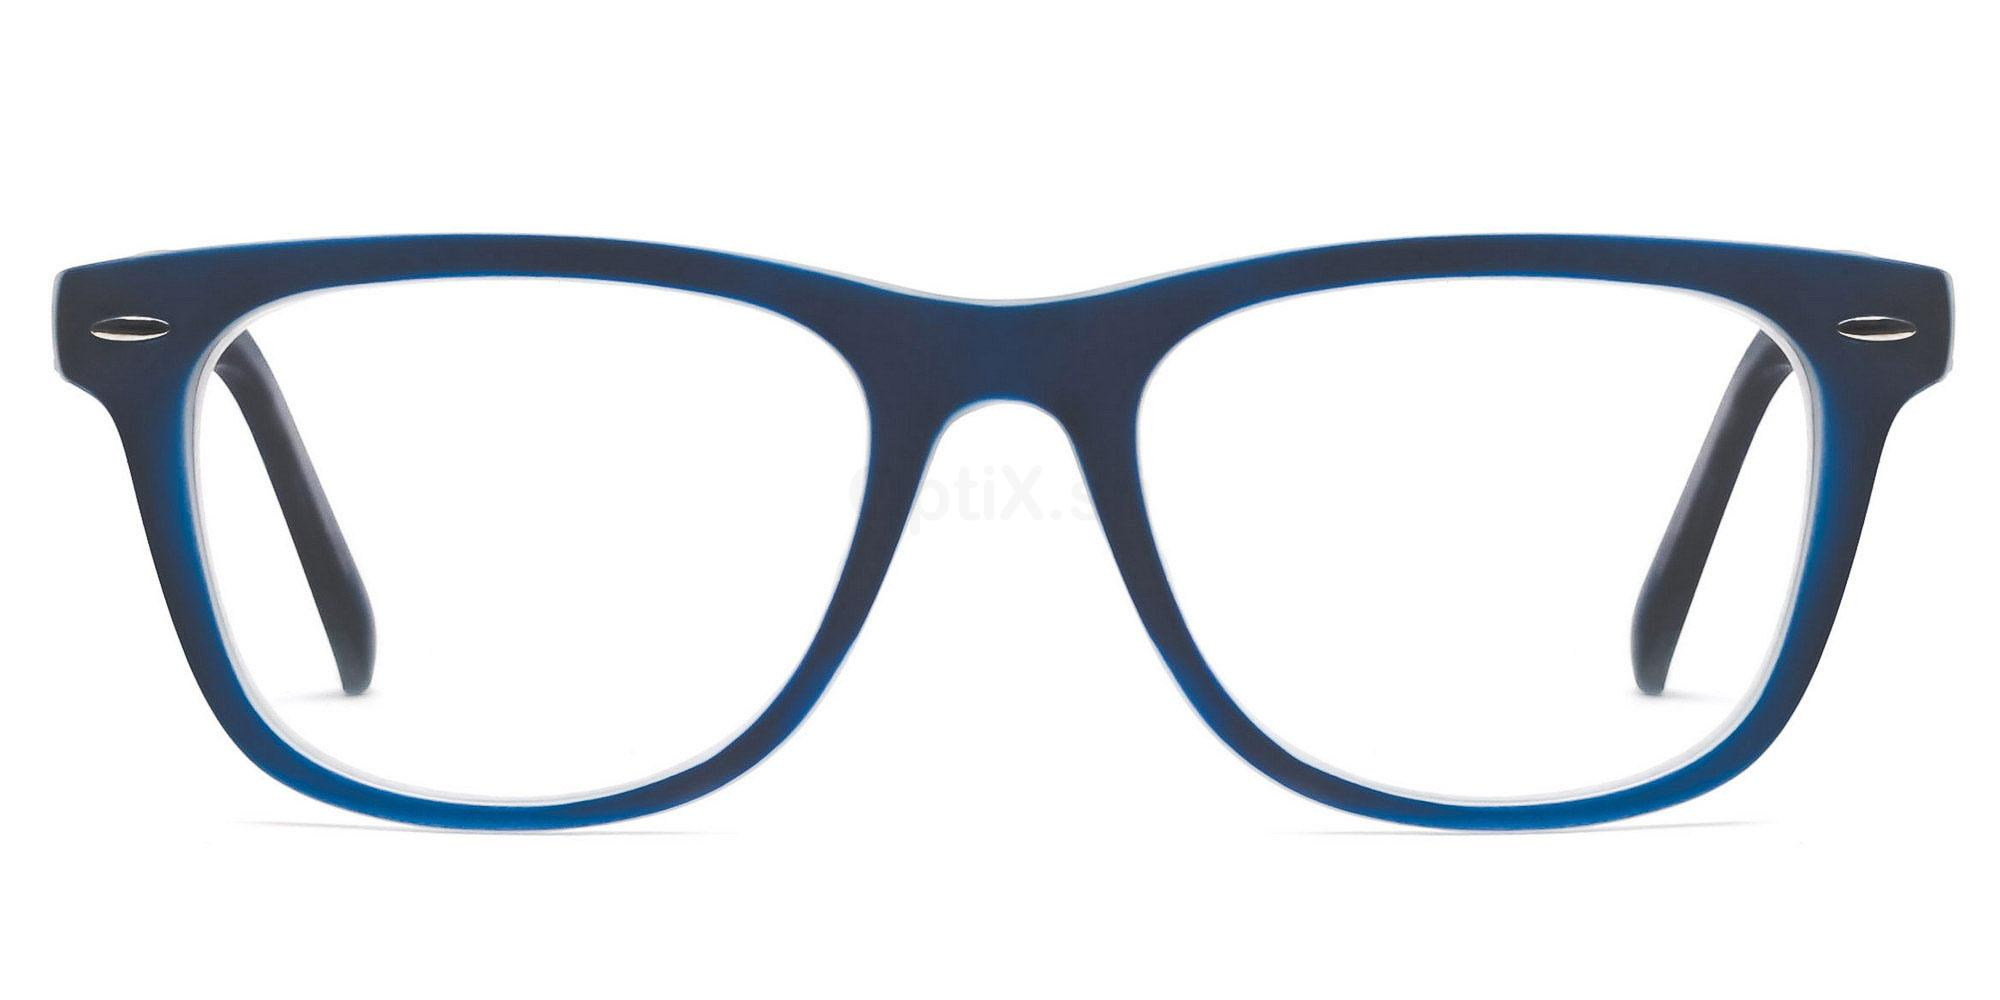 C14 8121 - Navy on Transparent Glasses, SelectSpecs